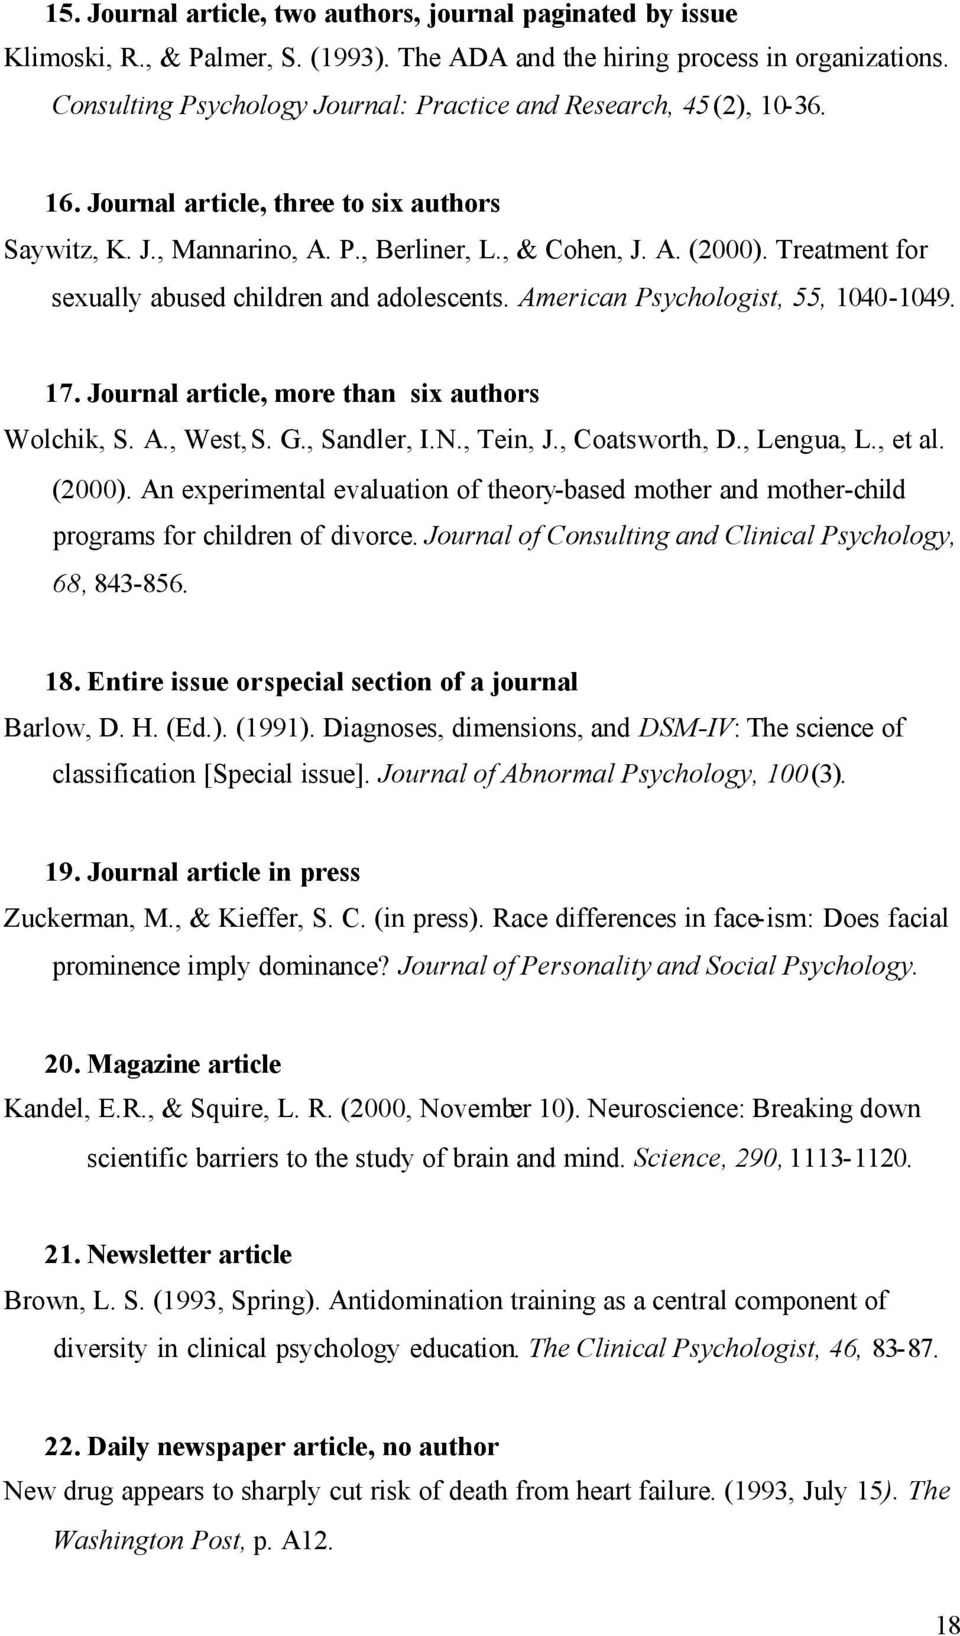 Treatment for sexually abused children and adolescents. American Psychologist, 55, 1040-1049. 17. Journal article, more than six authors Wolchik, S. A., West, S. G., Sandler, I.N., Tein, J.